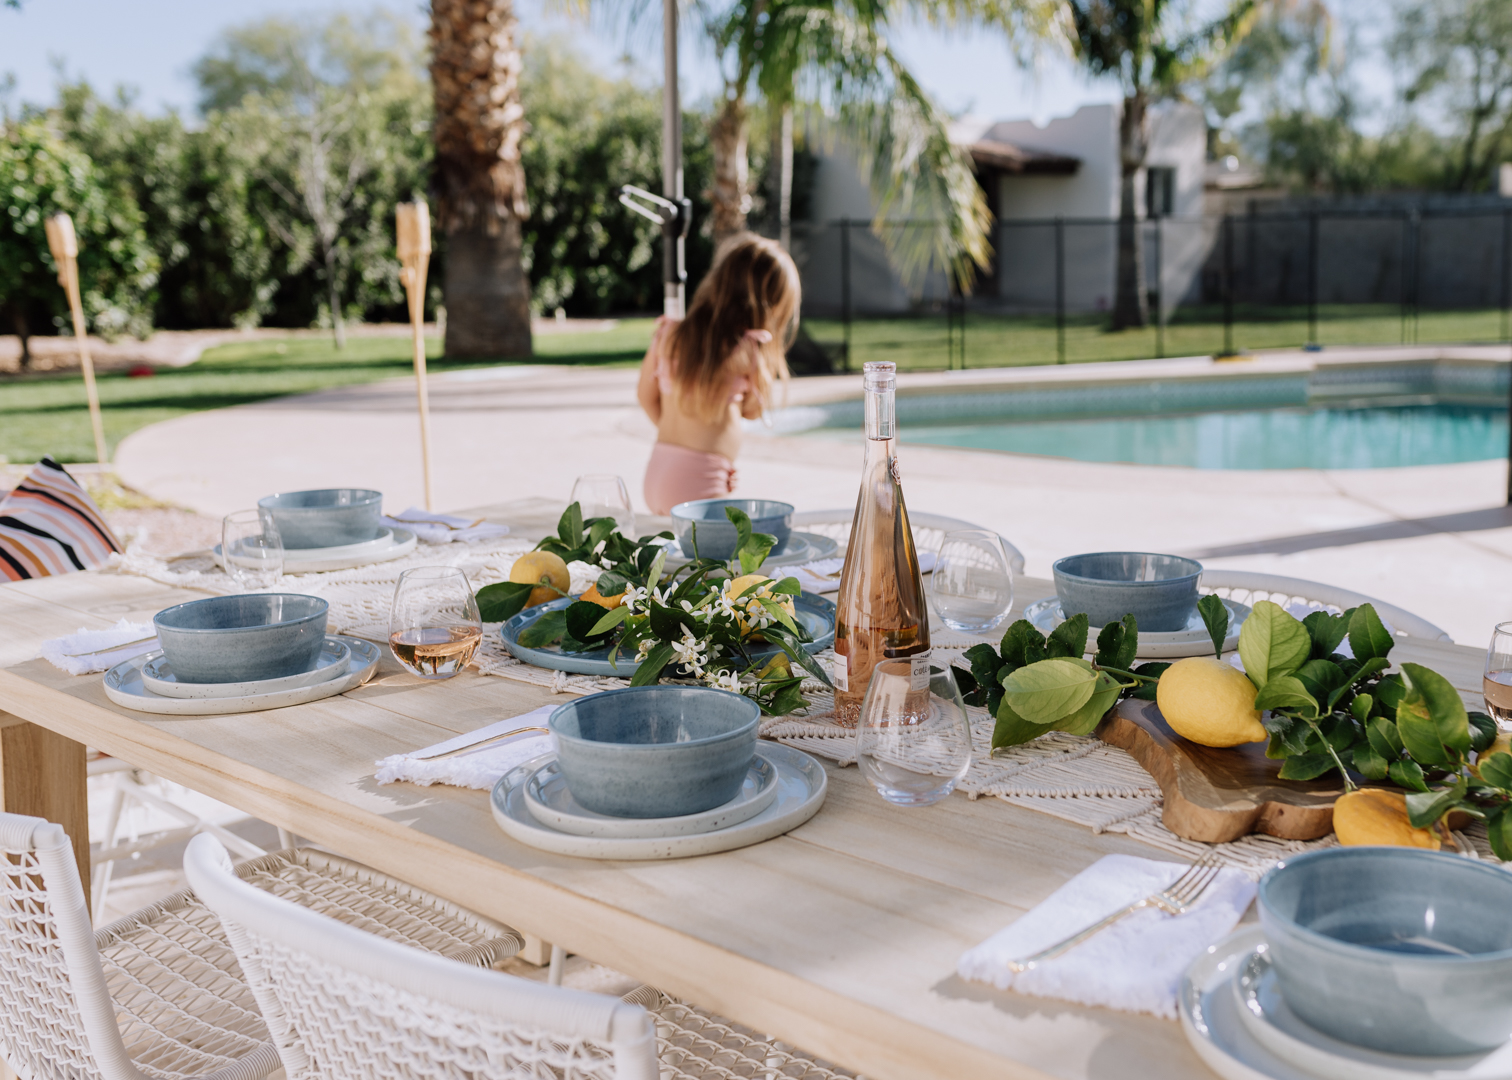 a pretty backyard setup for entertaining | thelovedesigndlife.com #backyard #poolseason